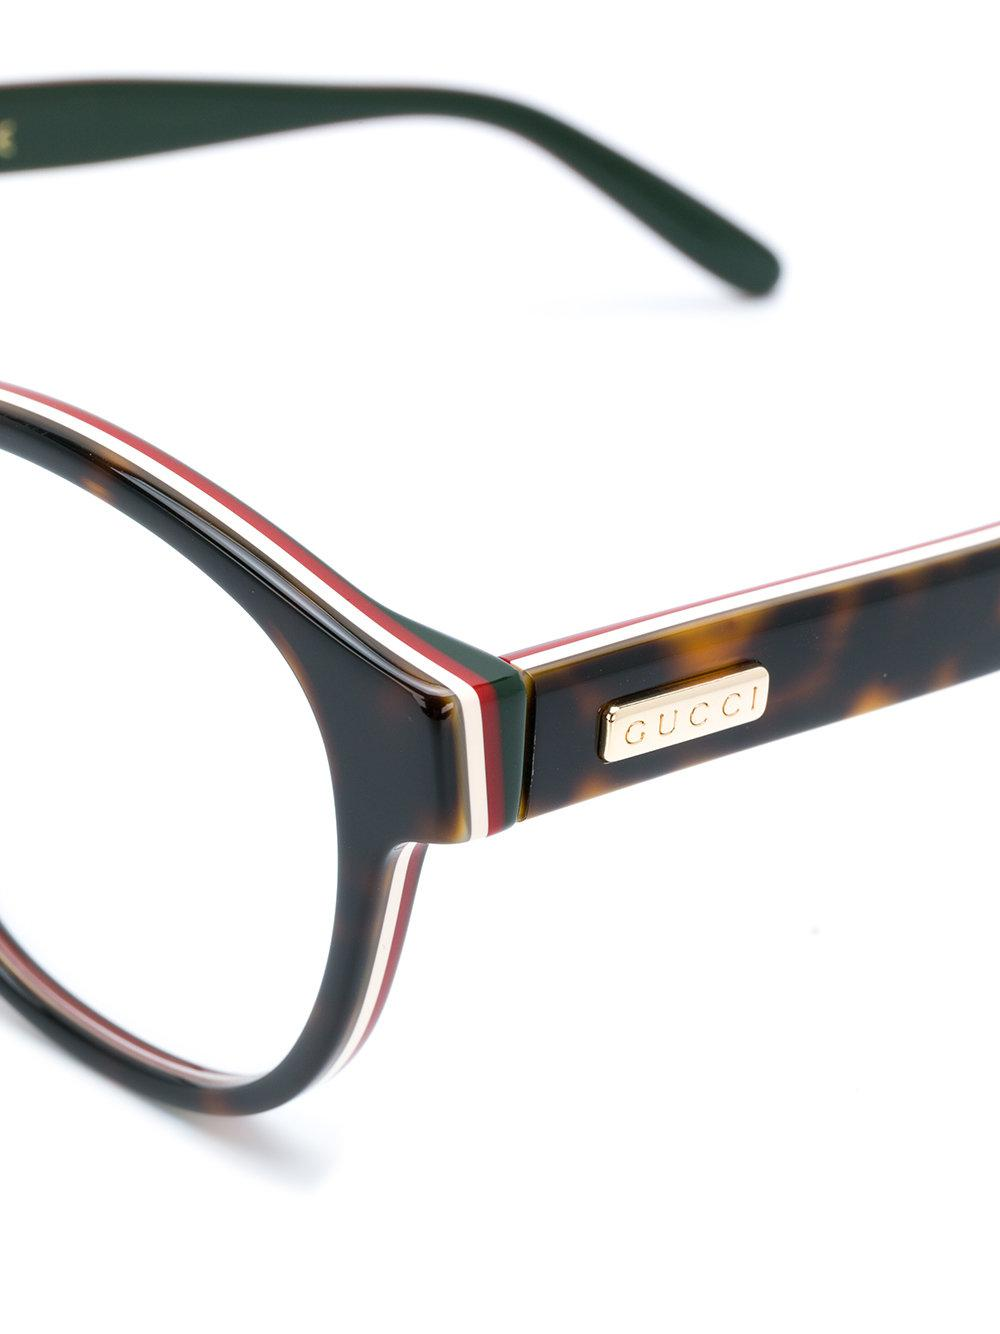 869ced8d60 Gucci - Brown Tortoiseshell Round Frame Glasses - Lyst. View fullscreen